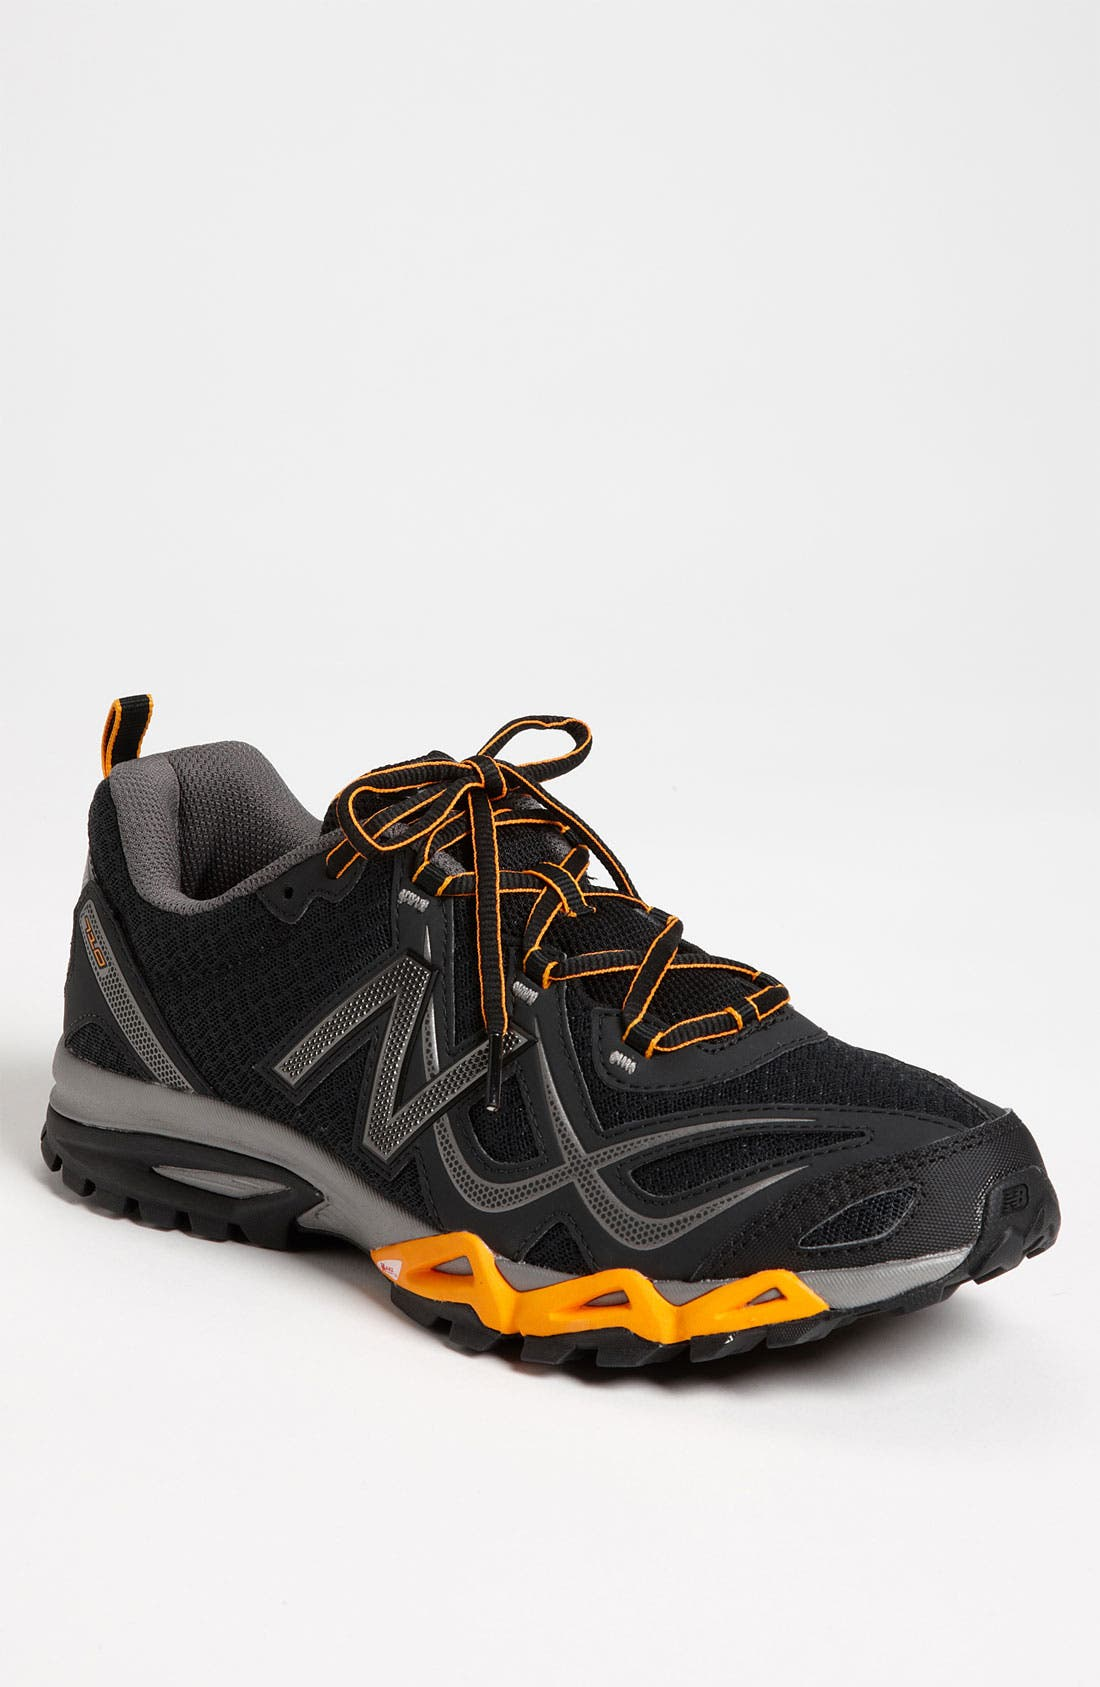 Alternate Image 1 Selected - New Balance '710' Trail Running Shoe (Men)